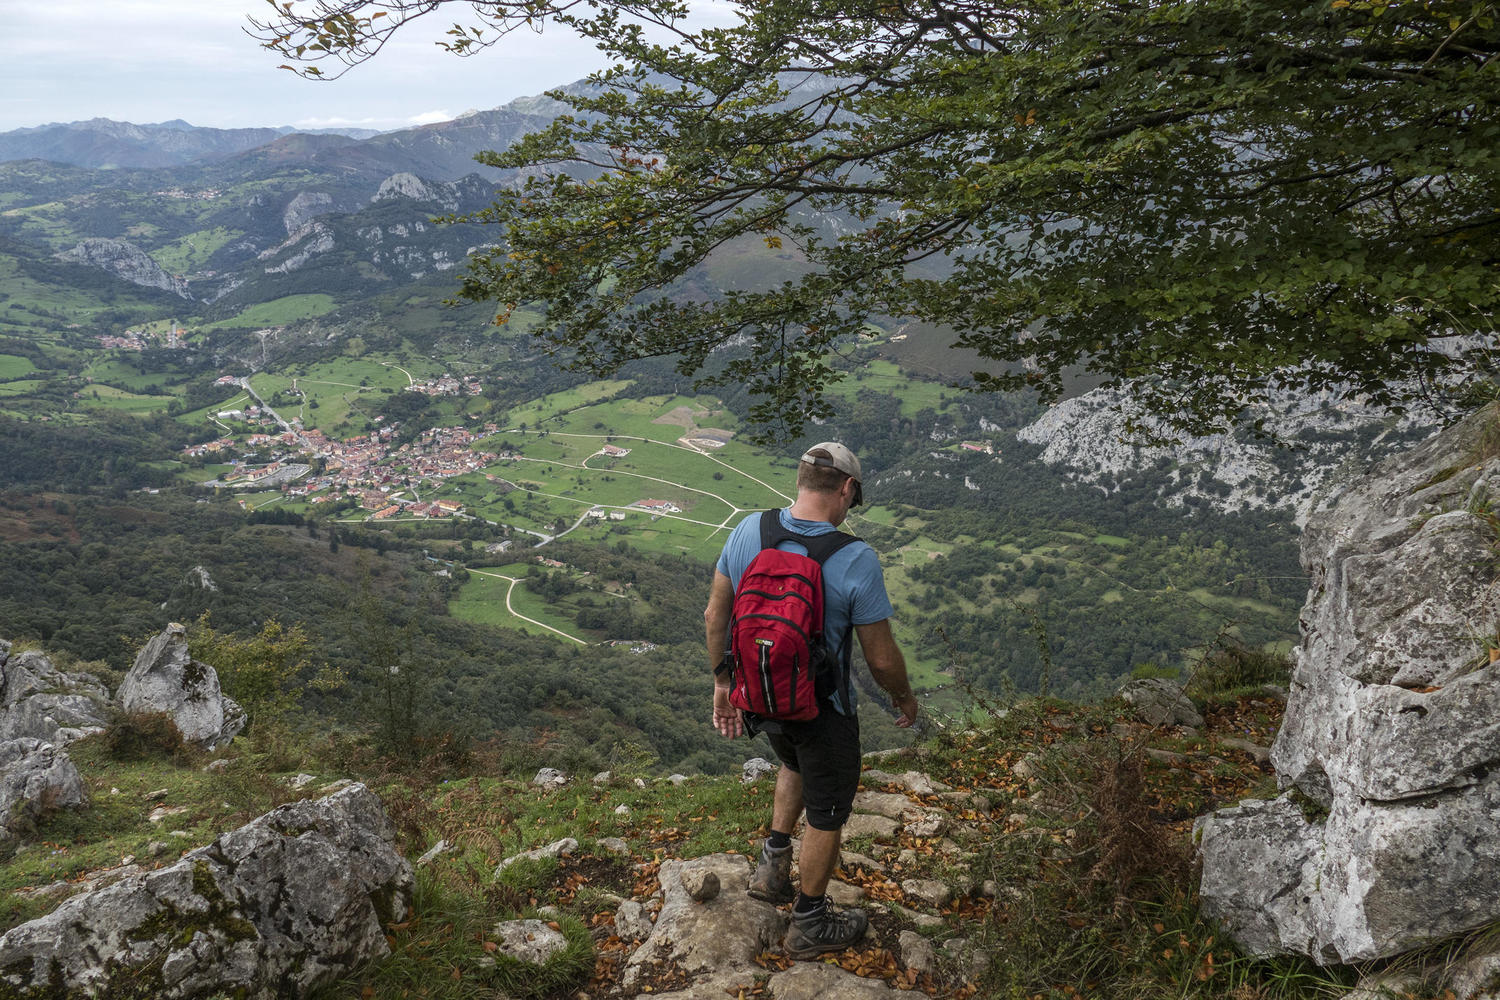 Hiking down along the Roman road of Caoru